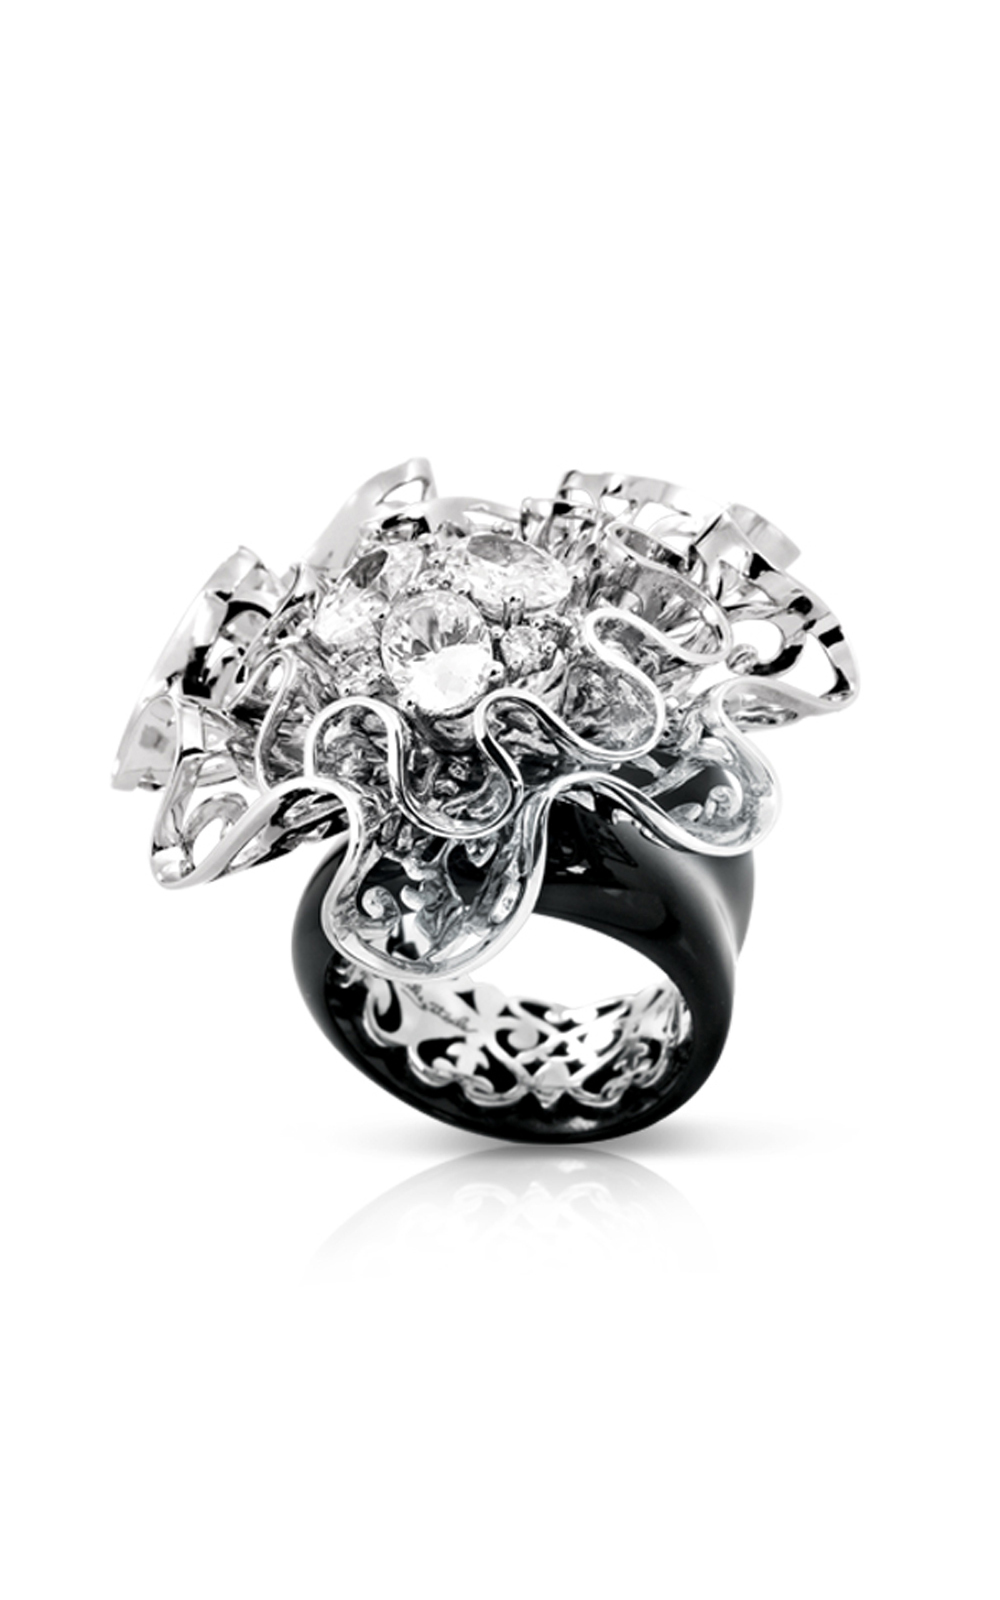 Belle Etoile Corsage Black Ring 01061010301-6 product image